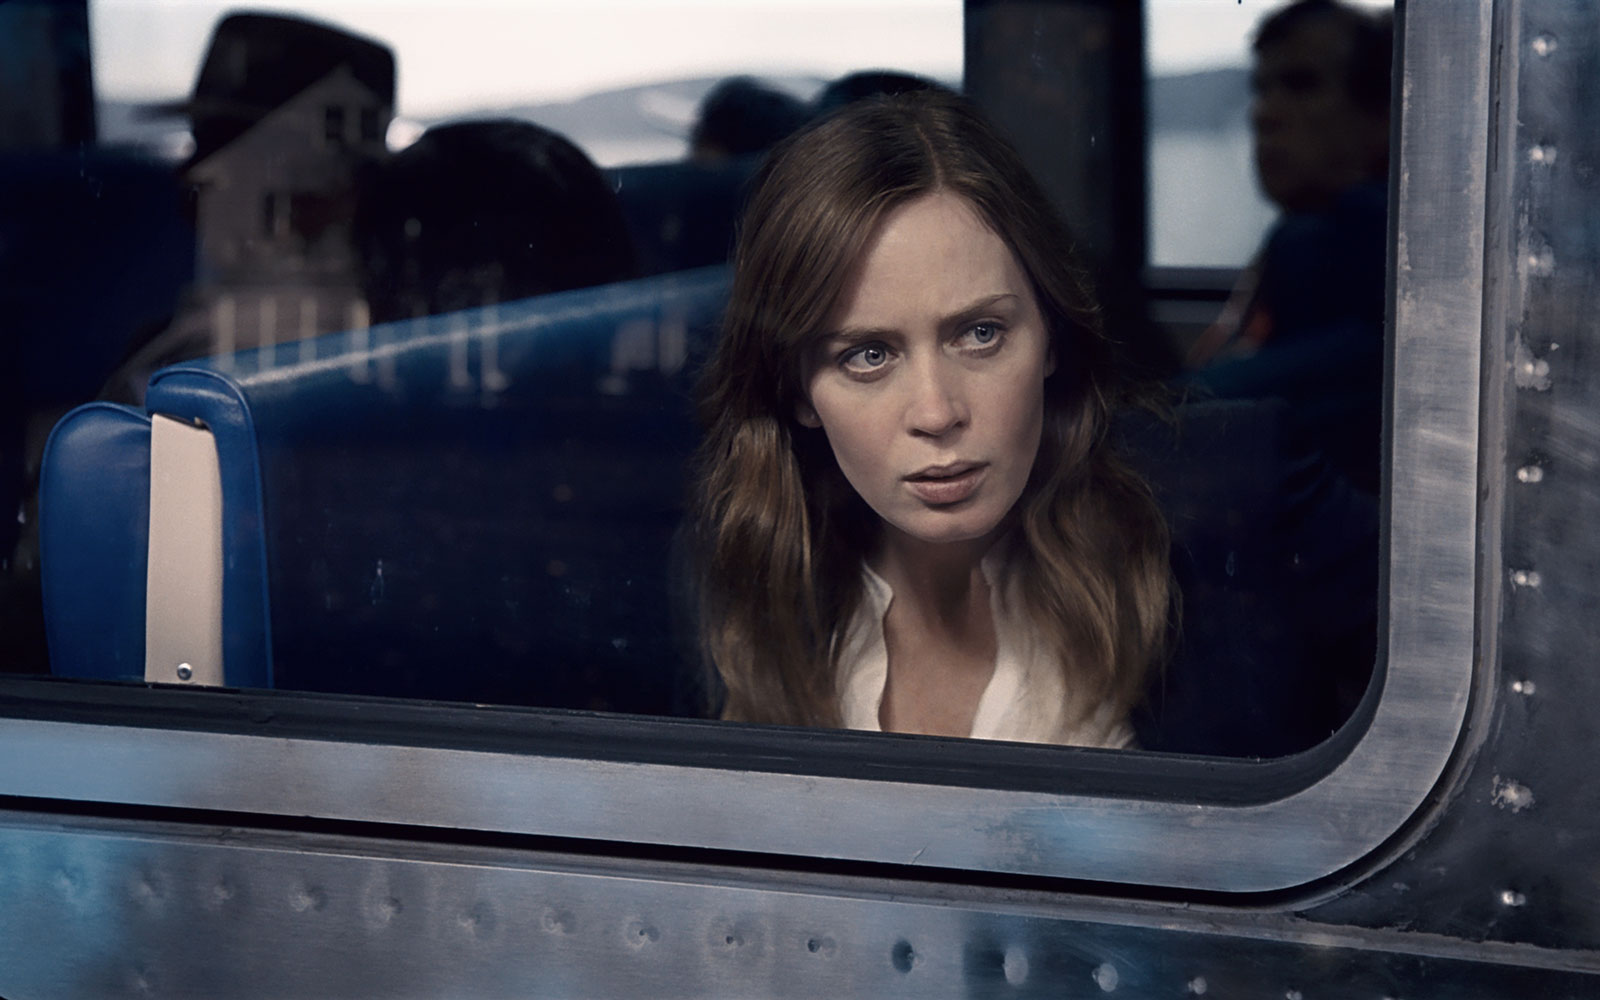 'the girl on the train' movie review by lucas mirabella